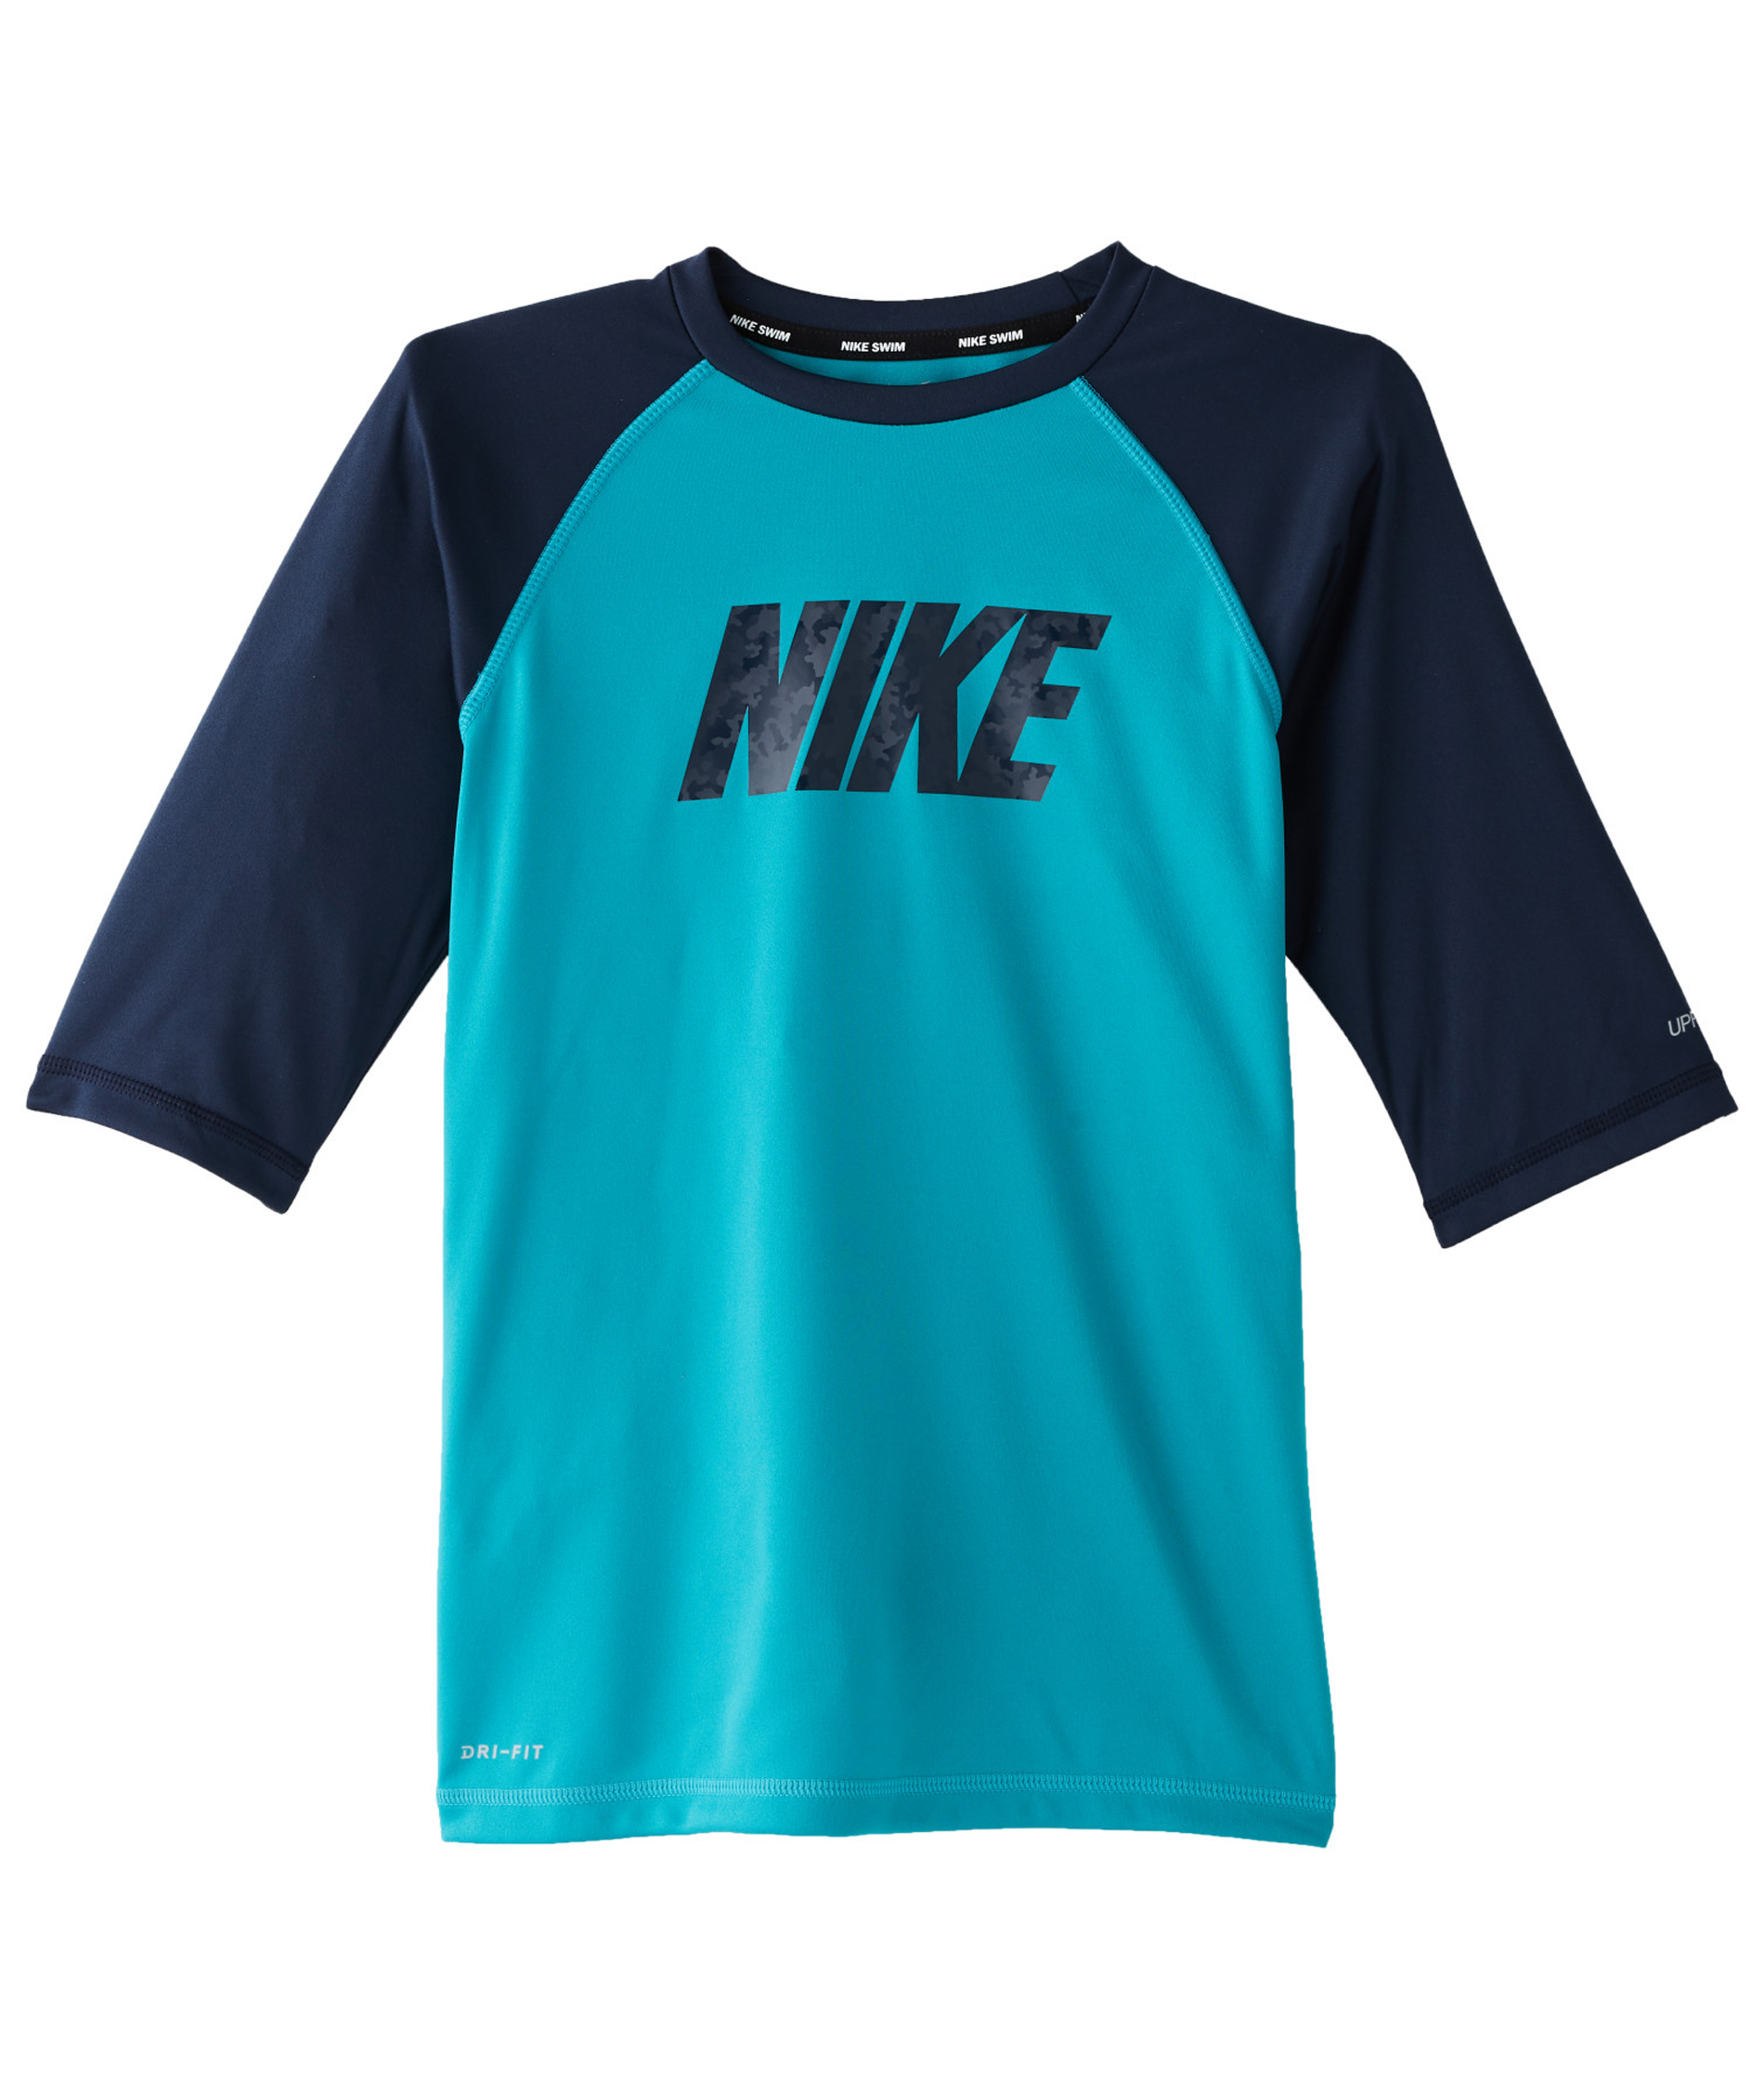 Nike Boys Short Sleeve Hydroguard - Teal